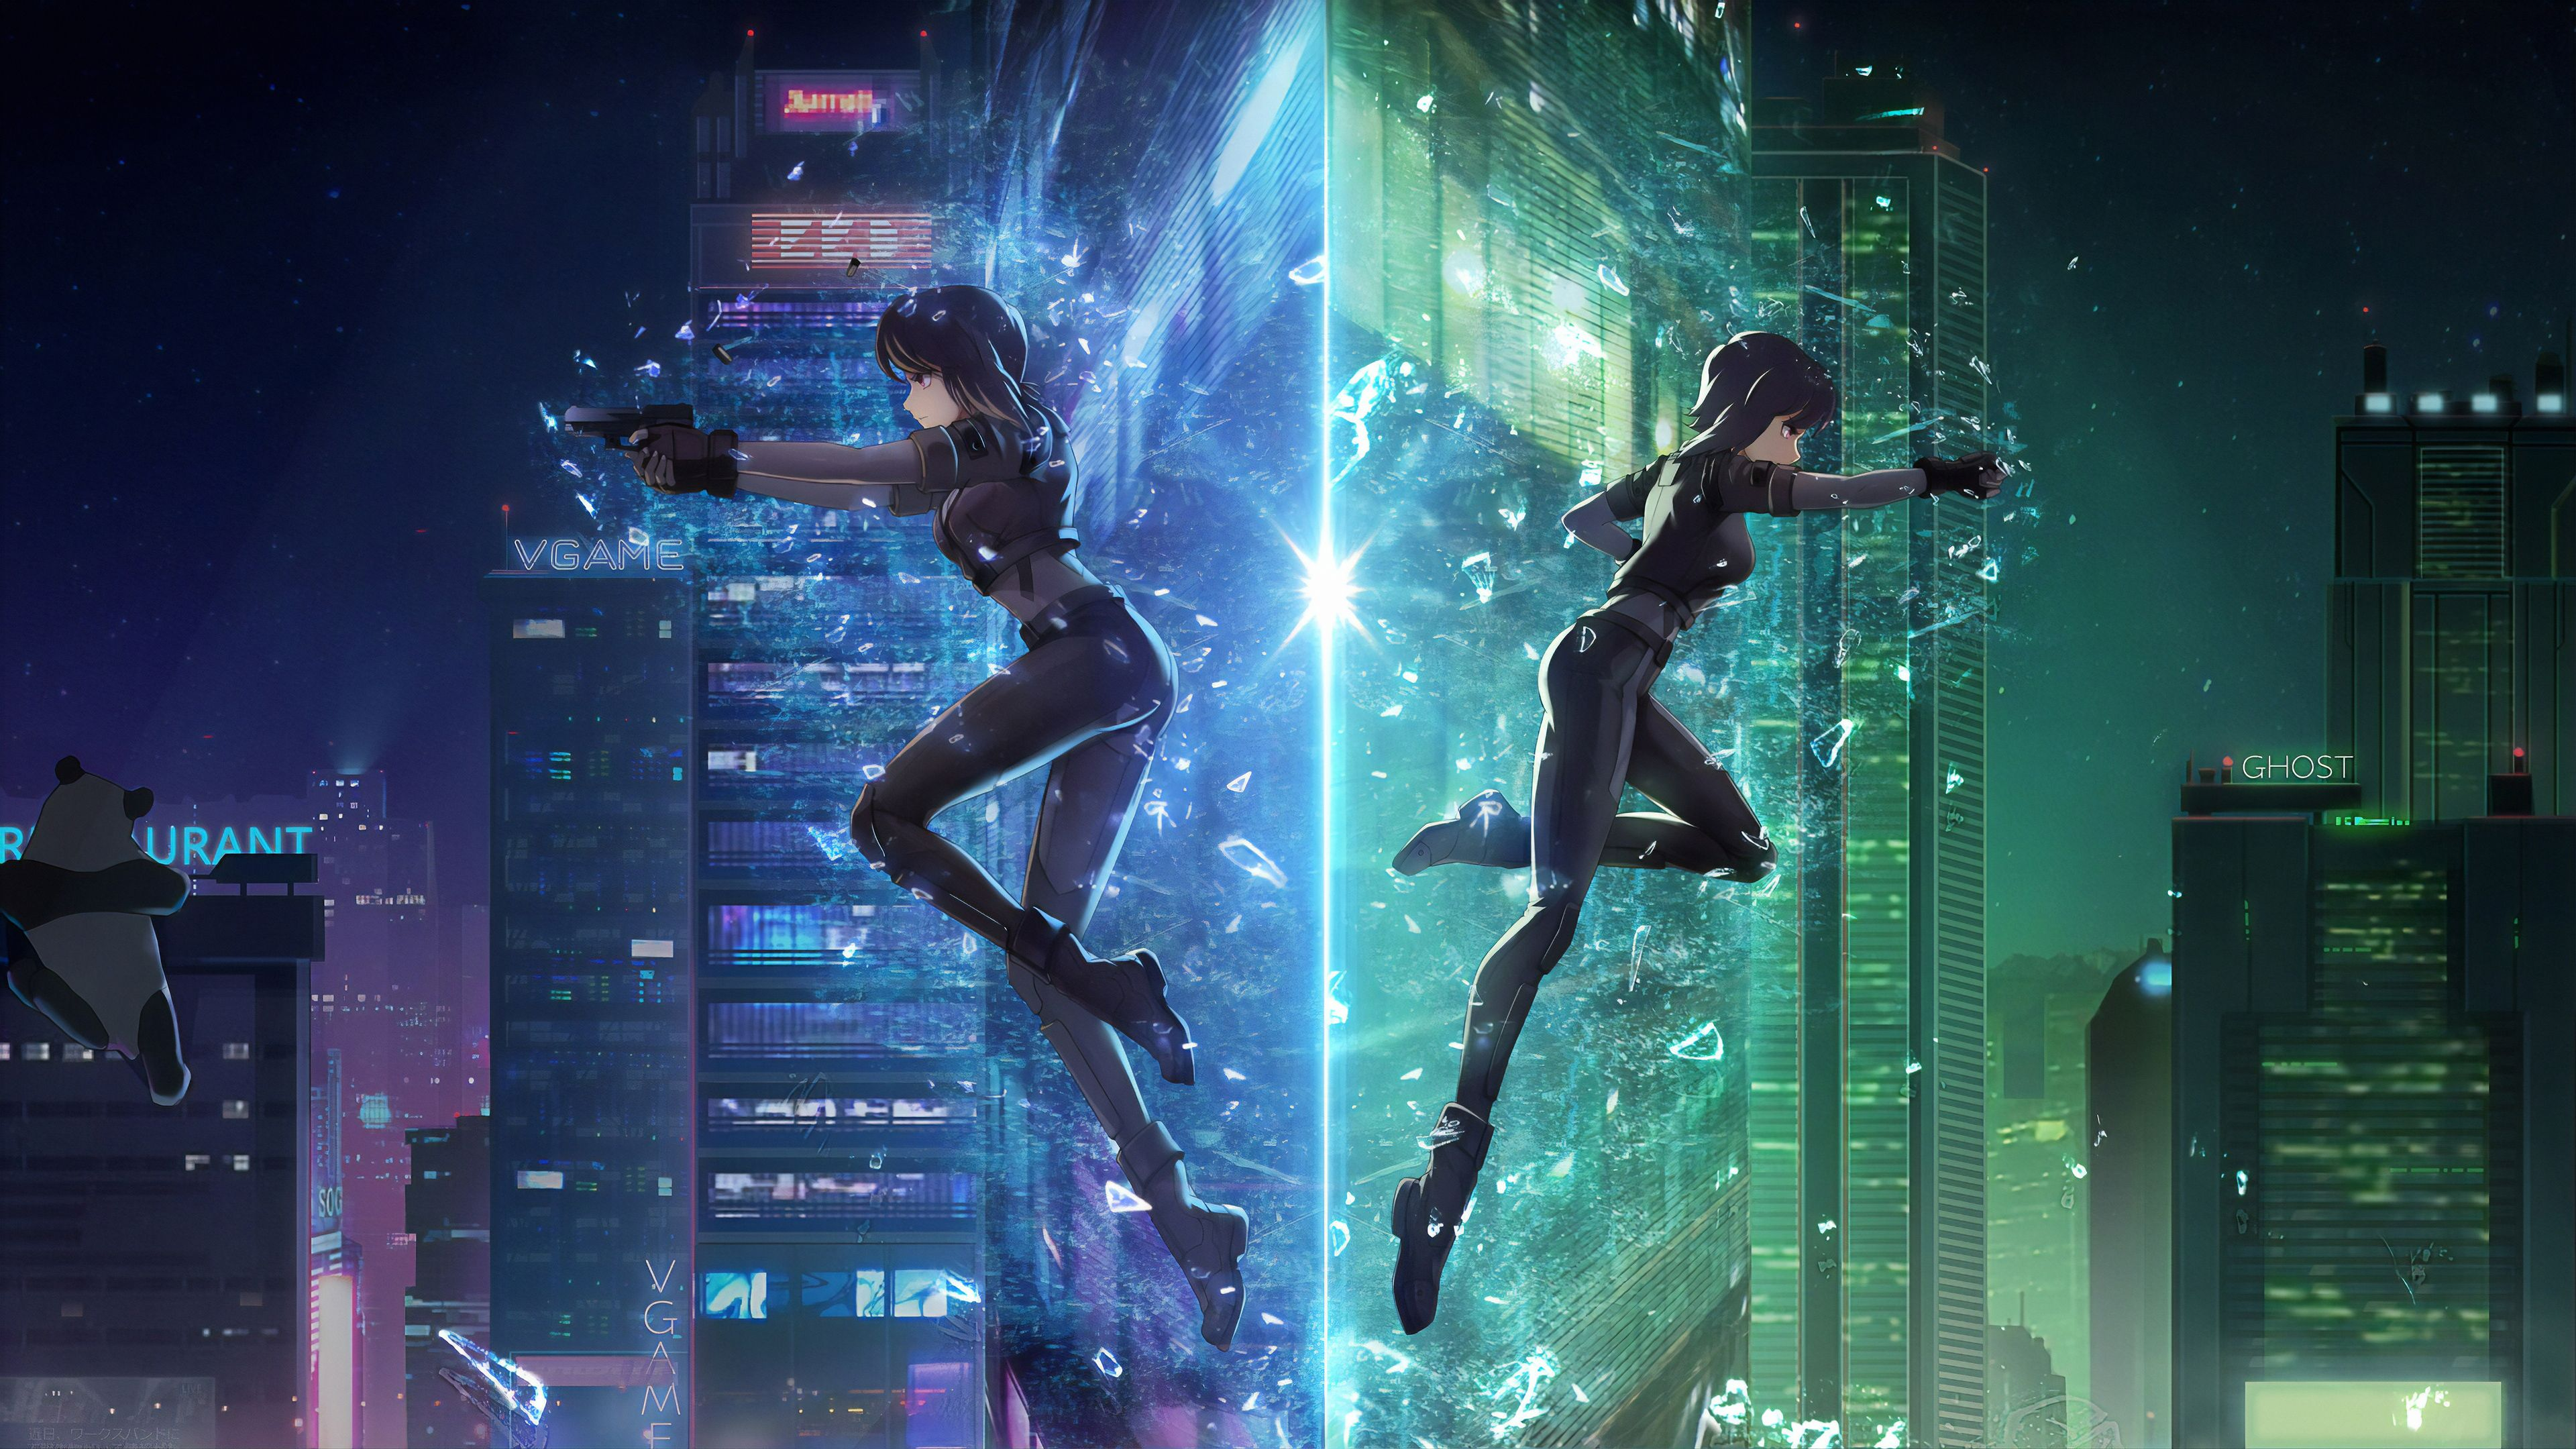 Ghost In The Shell Anime Wallpapers Wallpaper Cave